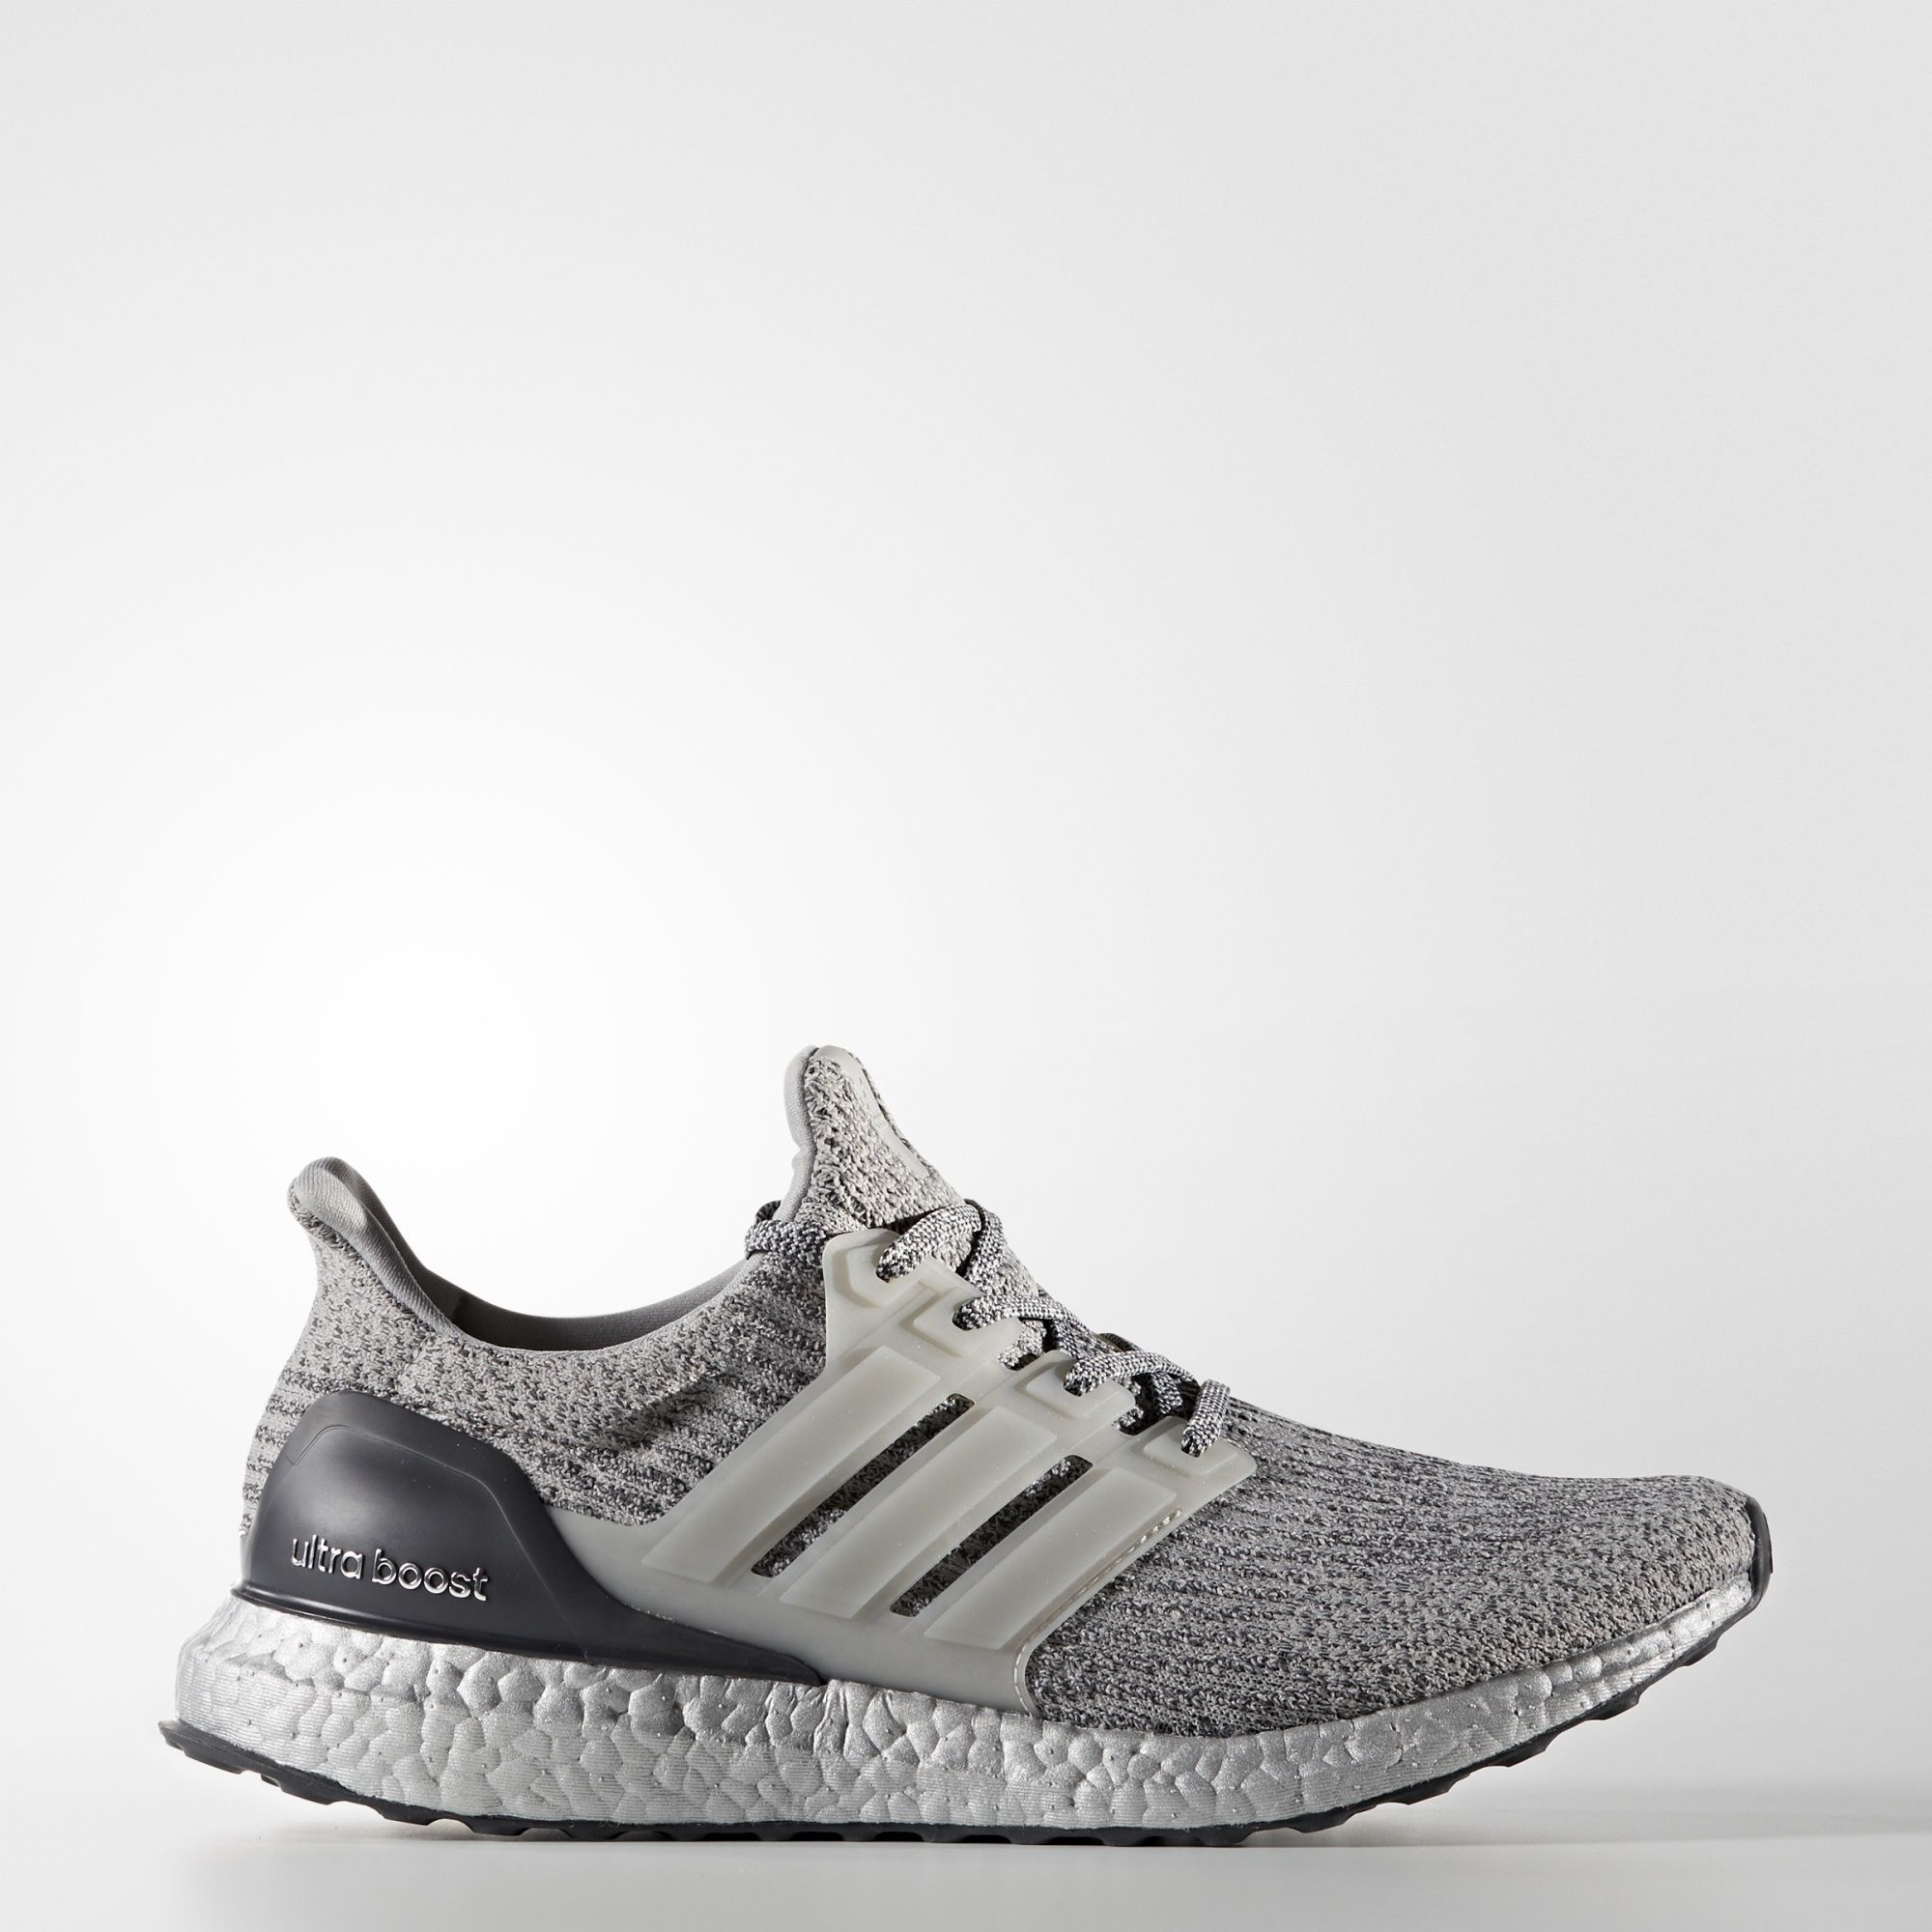 official photos 5e676 c4146 Adidas Ultraboost 3.0 - Grey with Silver Boost midsole